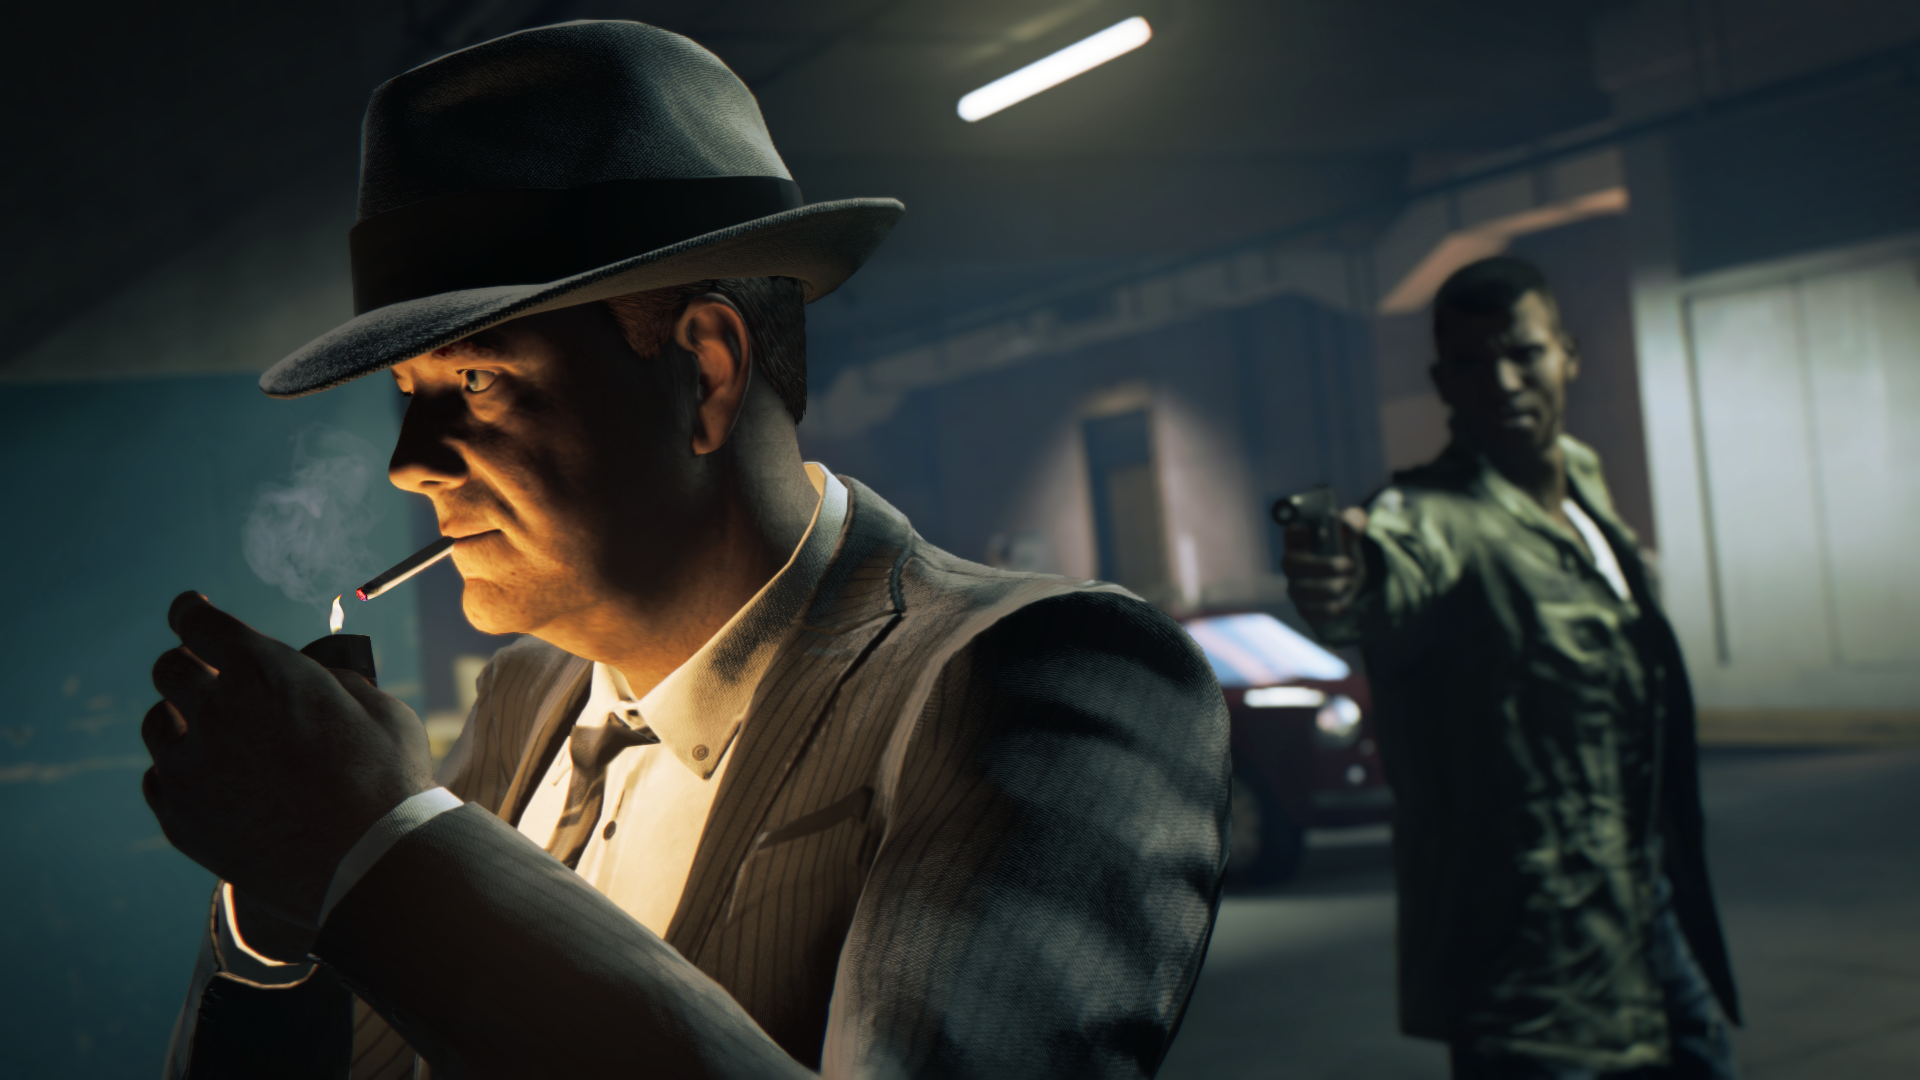 Mafia 3: How to Fix PC Black Screen, Cutscene Crashes